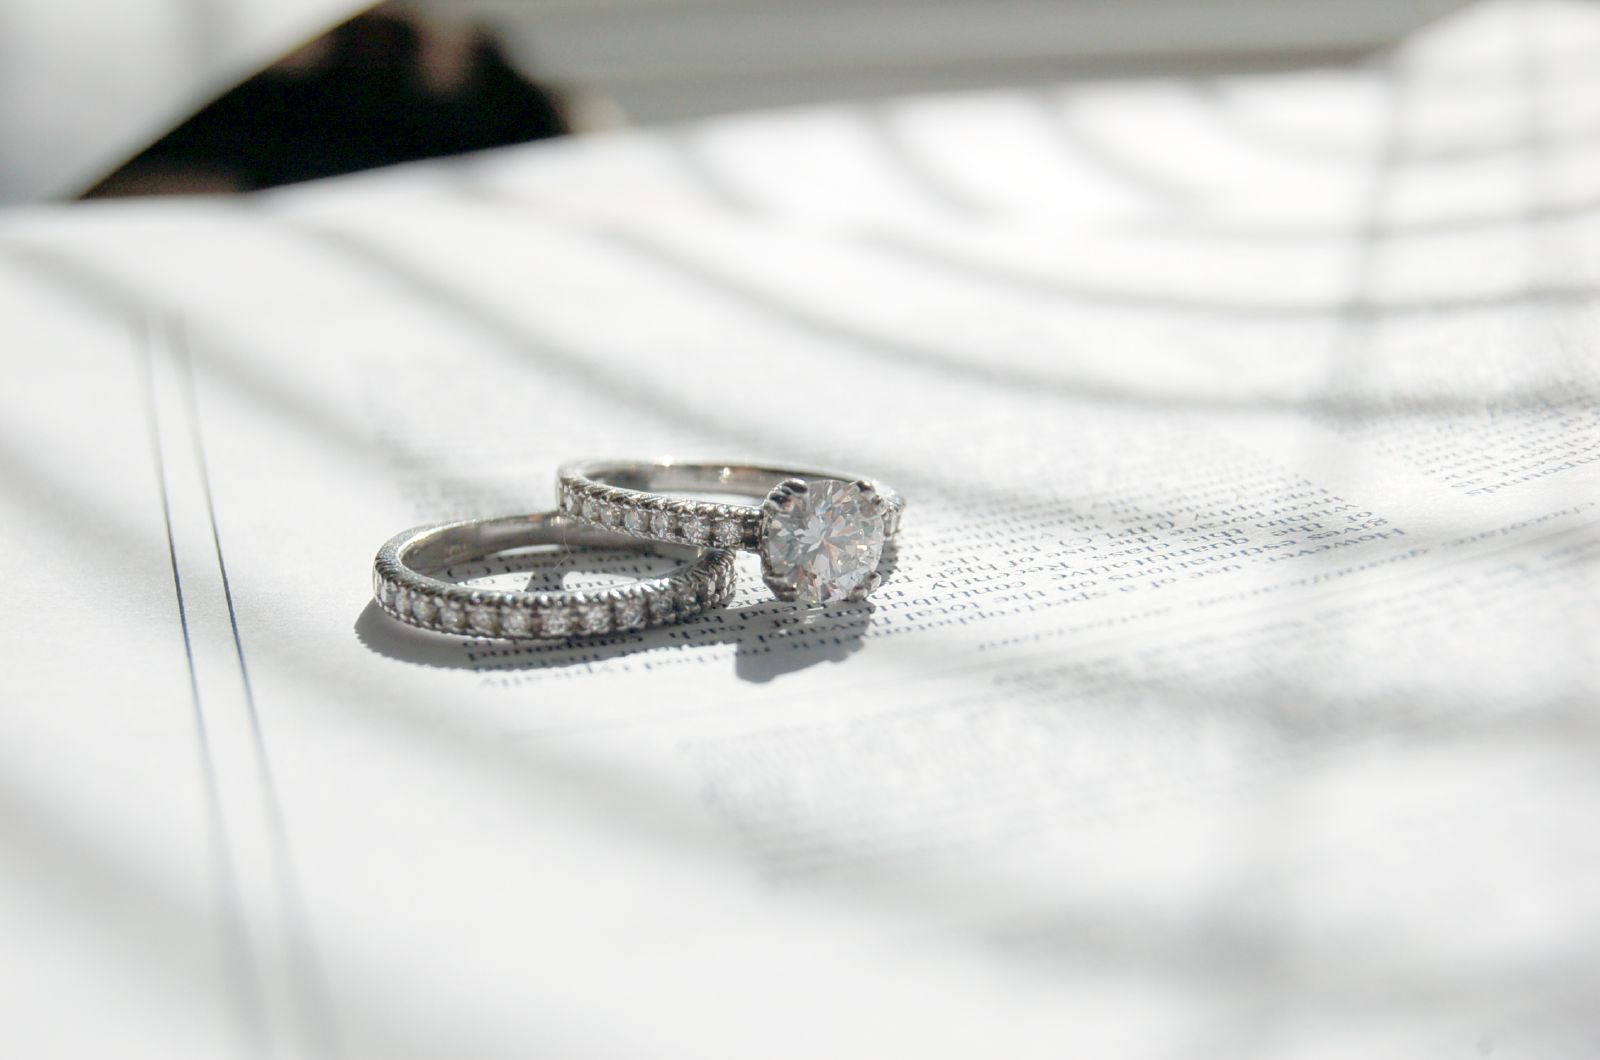 Pave Diamond Ring - What Is It?